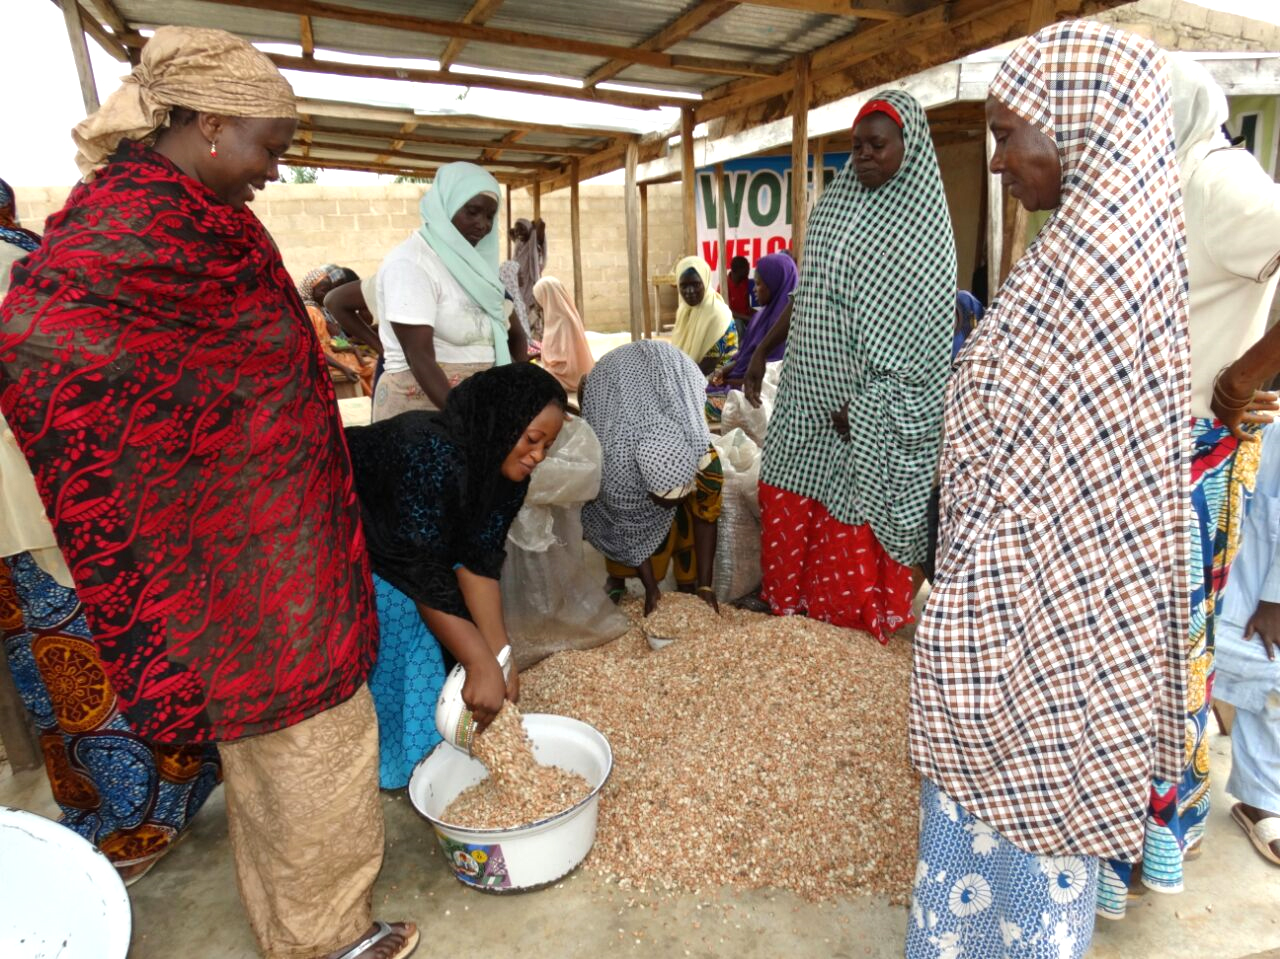 Women at the groundnut processing center.